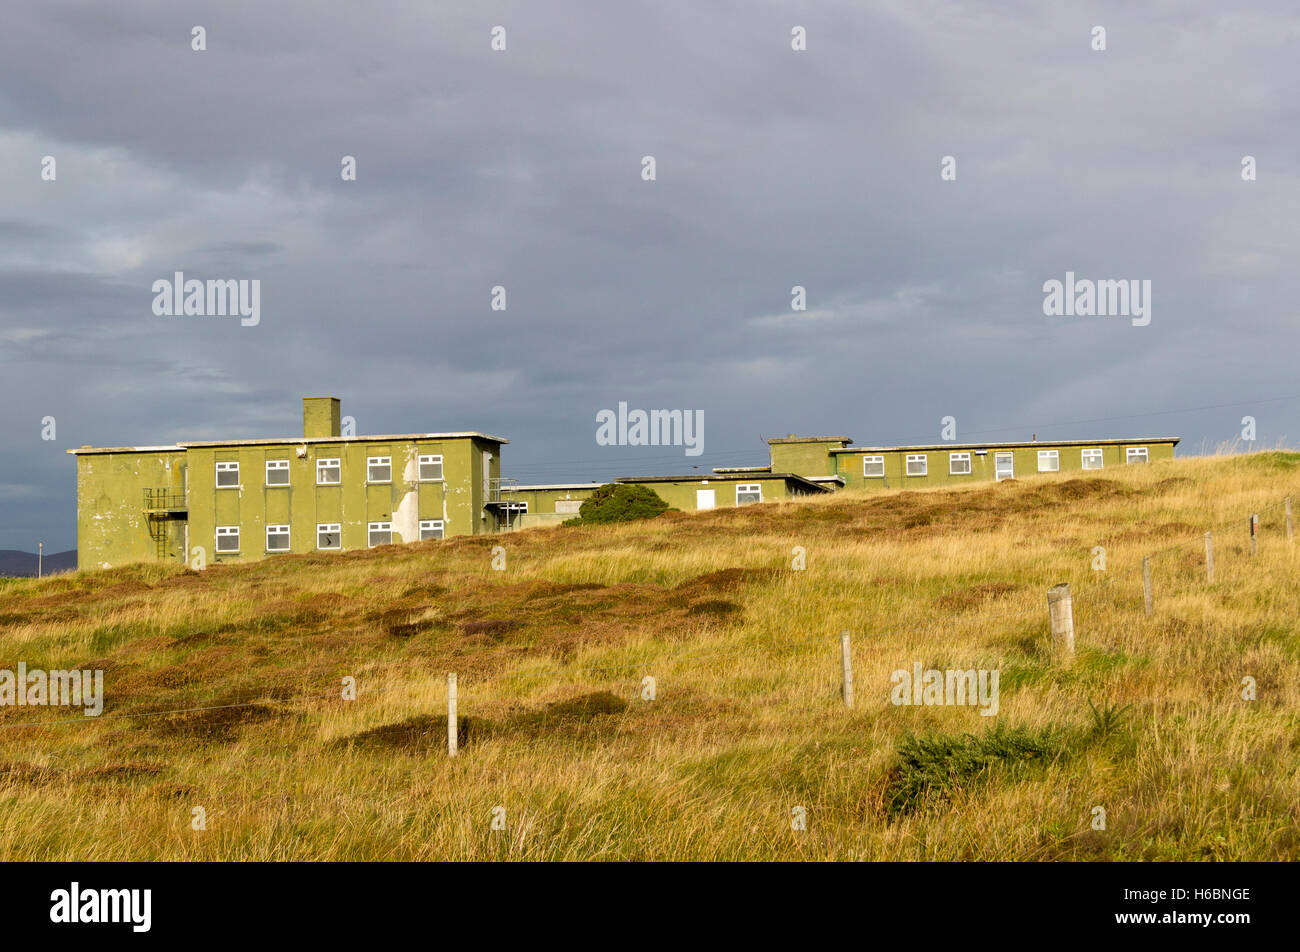 Nissan Huts at Stornoway Airport Isle of Lewis Western Isles Outer Hebrides Scotland United Kingdom Stock Photo